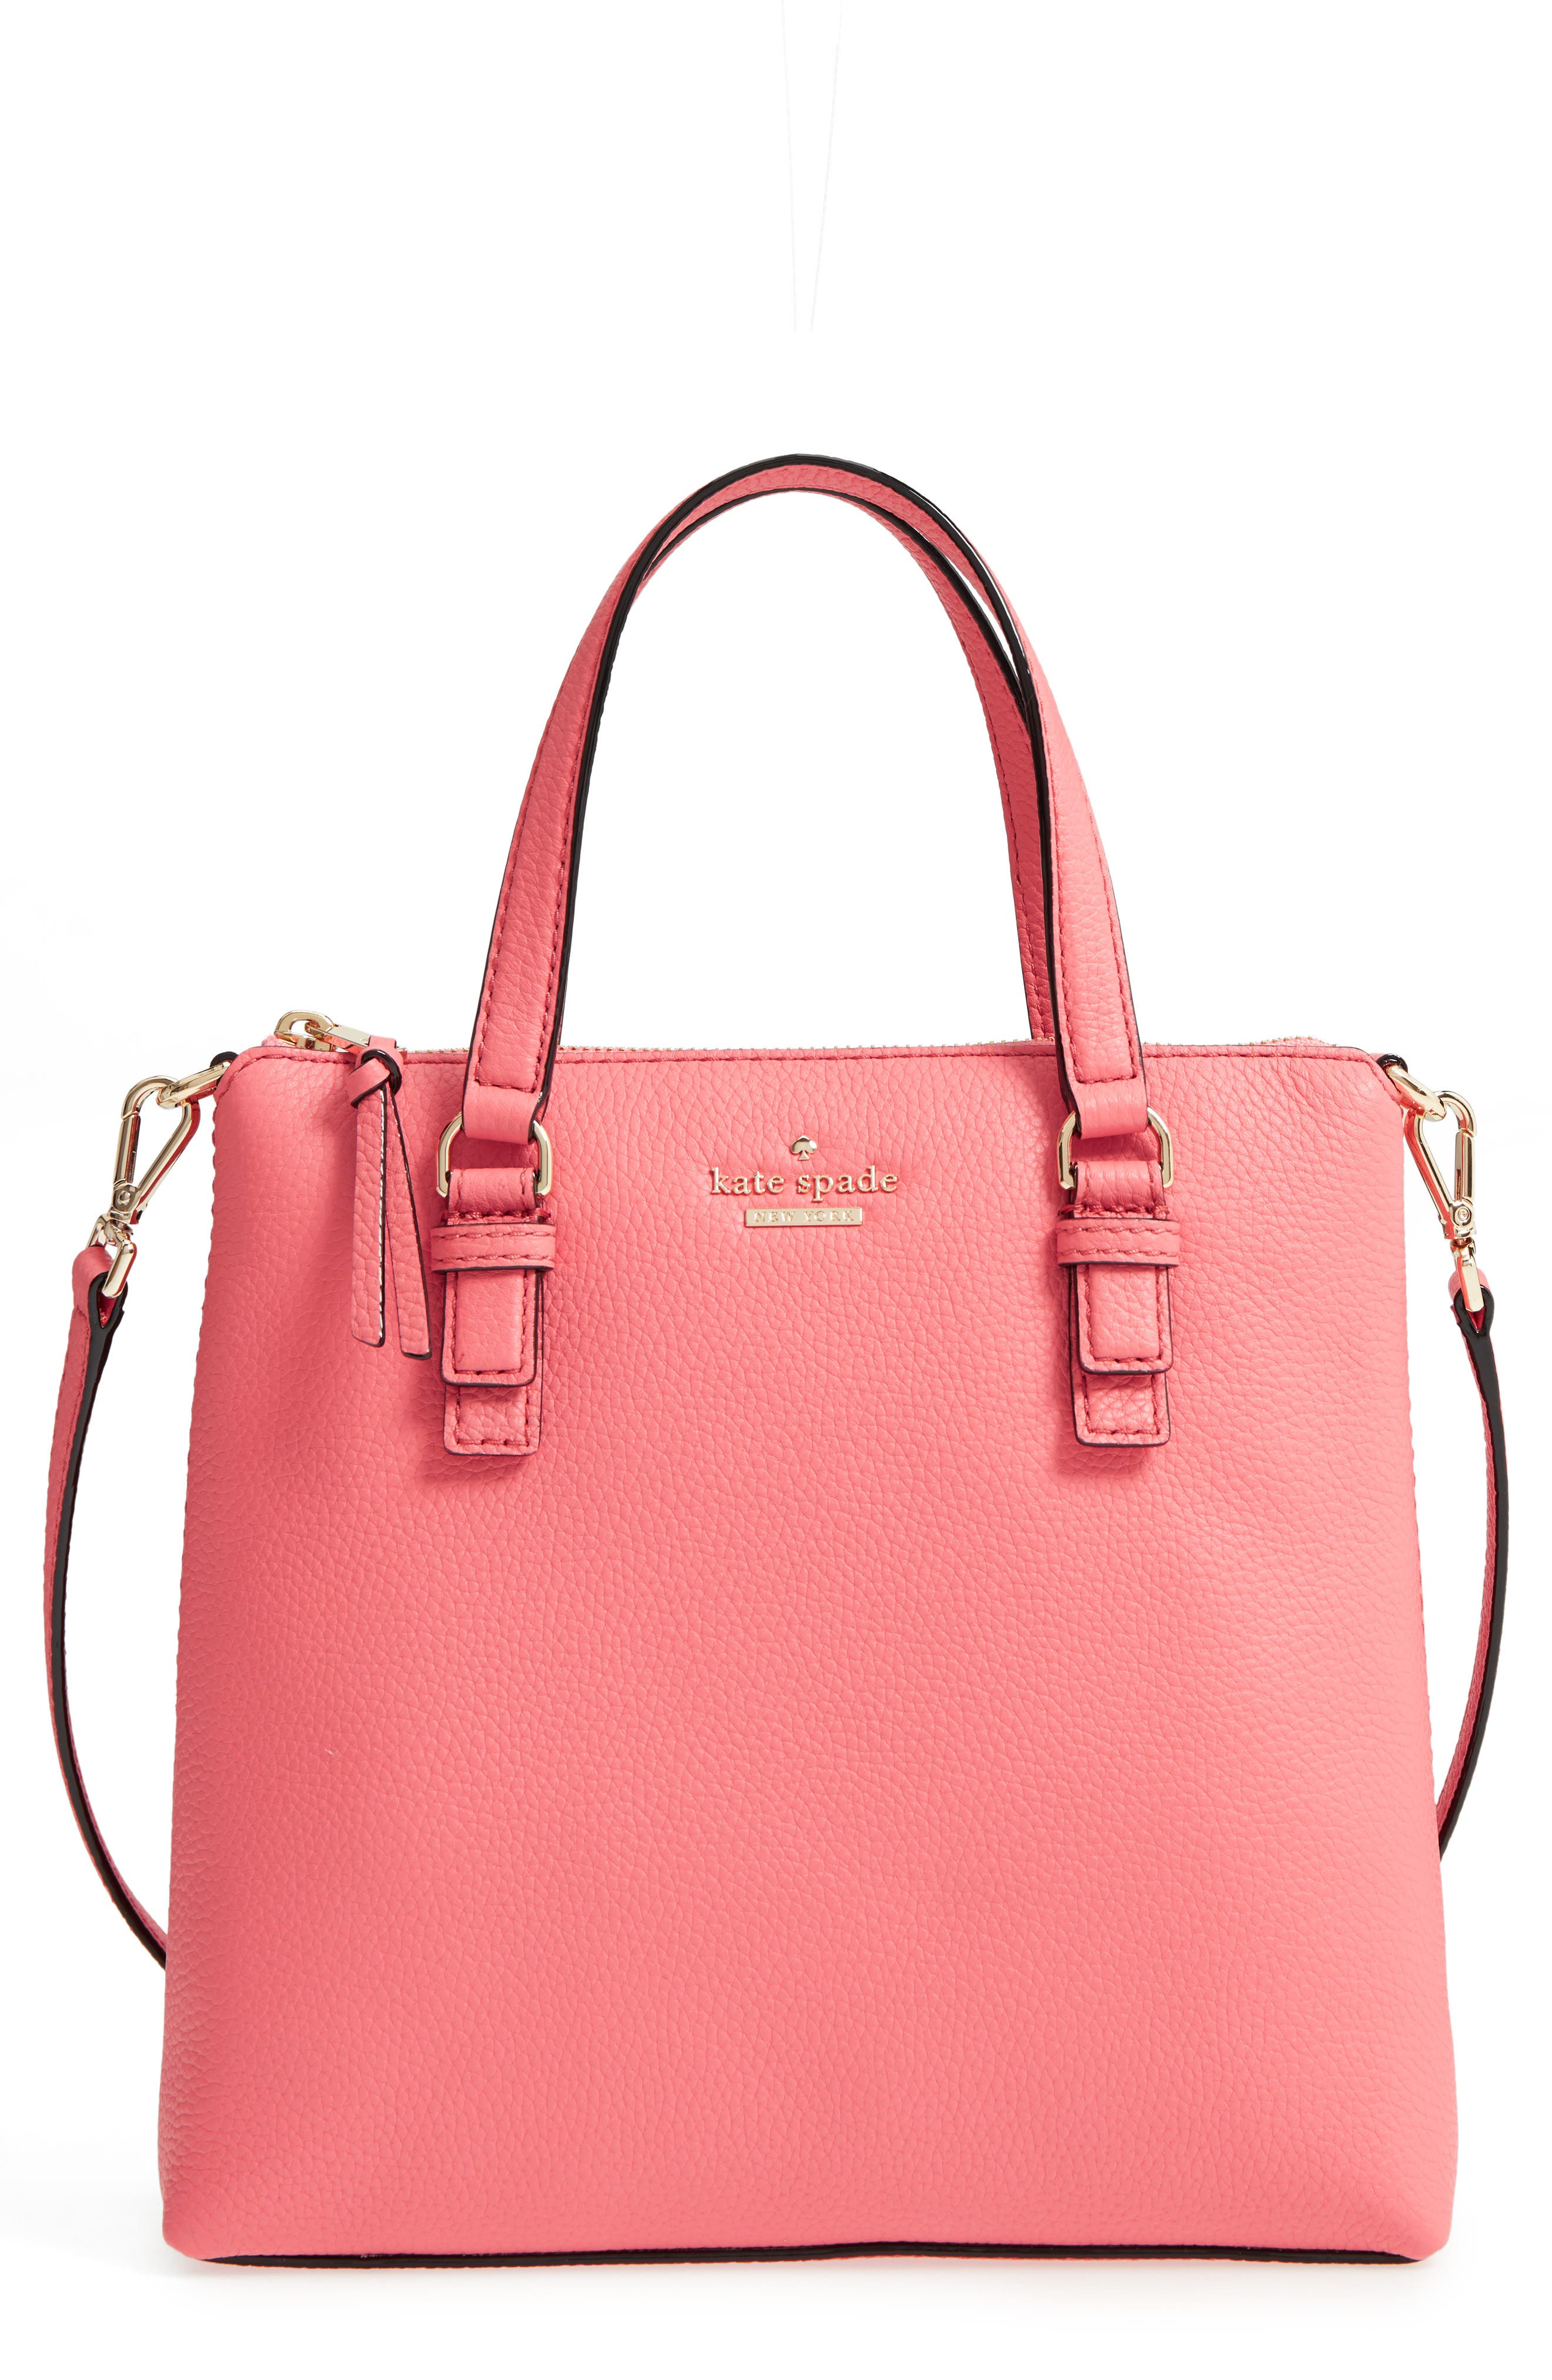 jackson street - hayley leather satchel,                         Main,                         color, 897